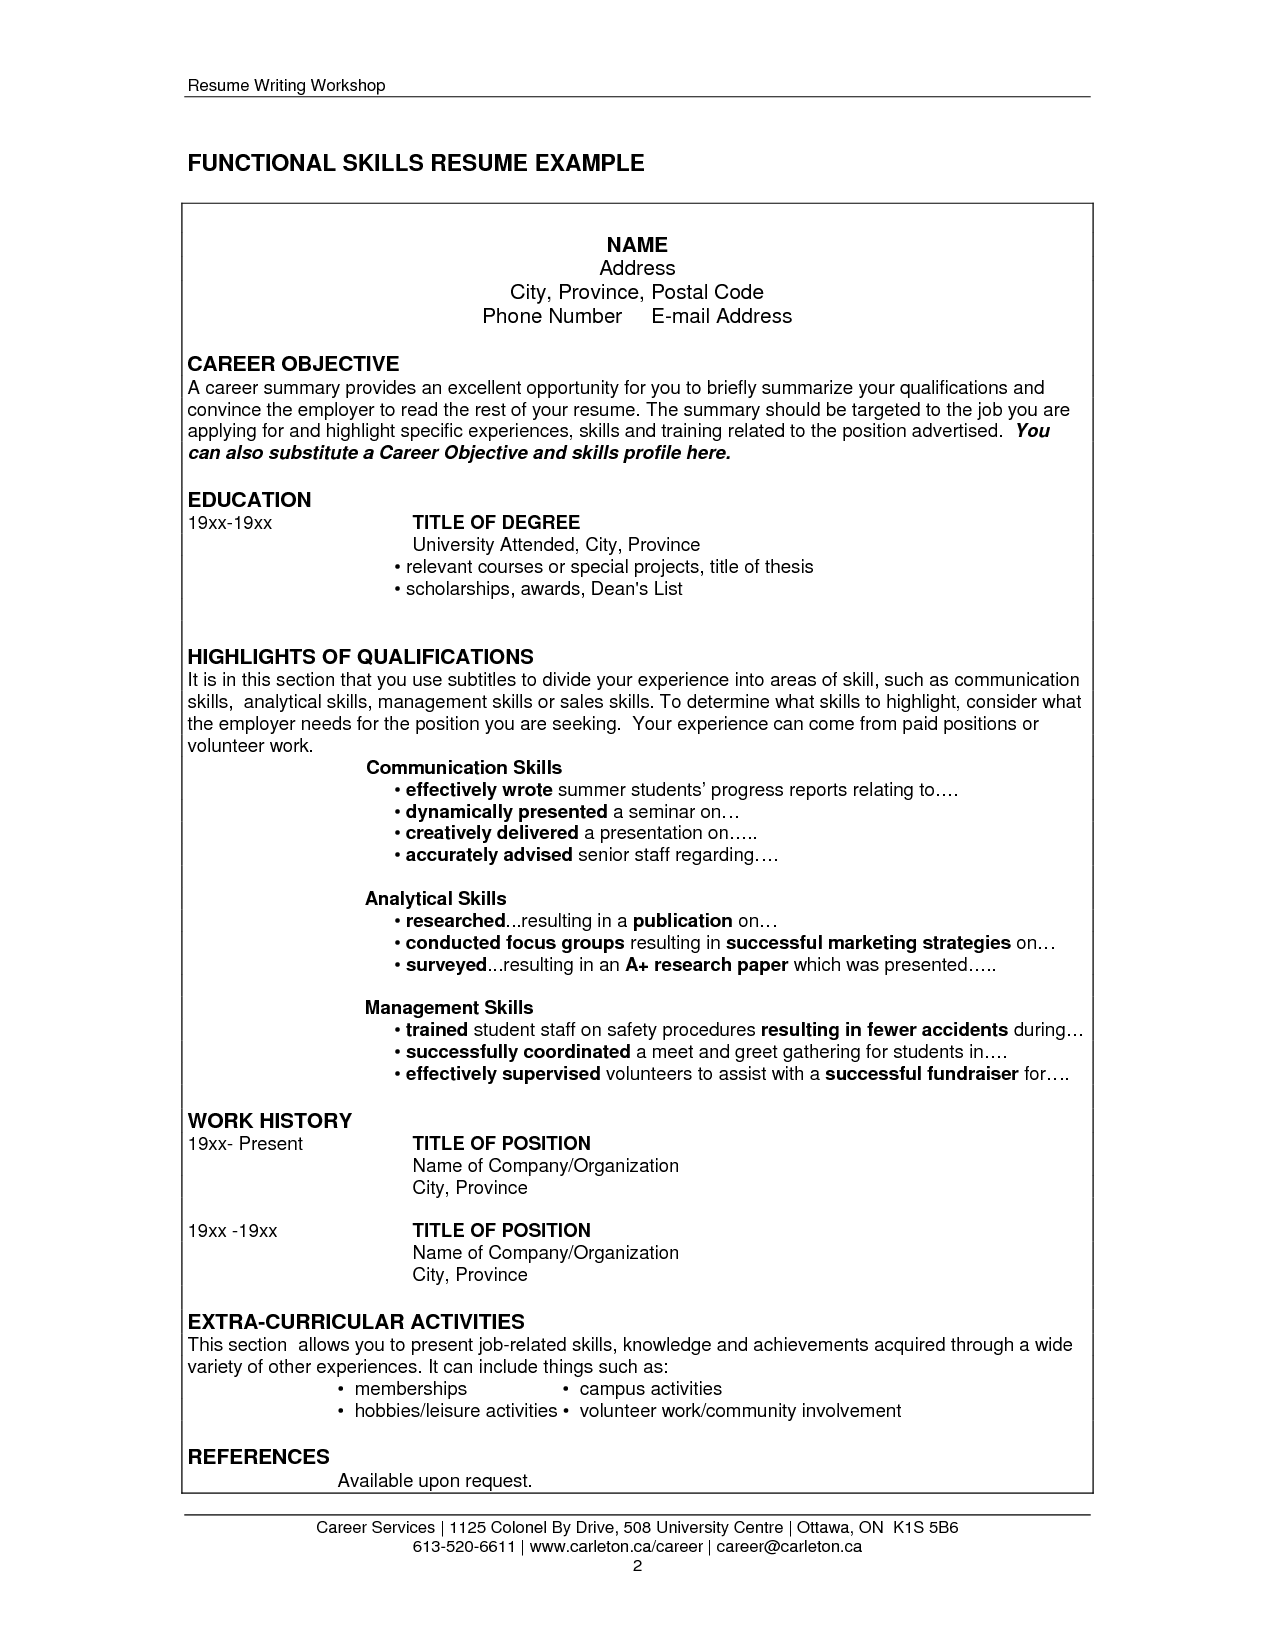 Skills | Resume Templates | Pinterest | Sample resume, Resume and ...